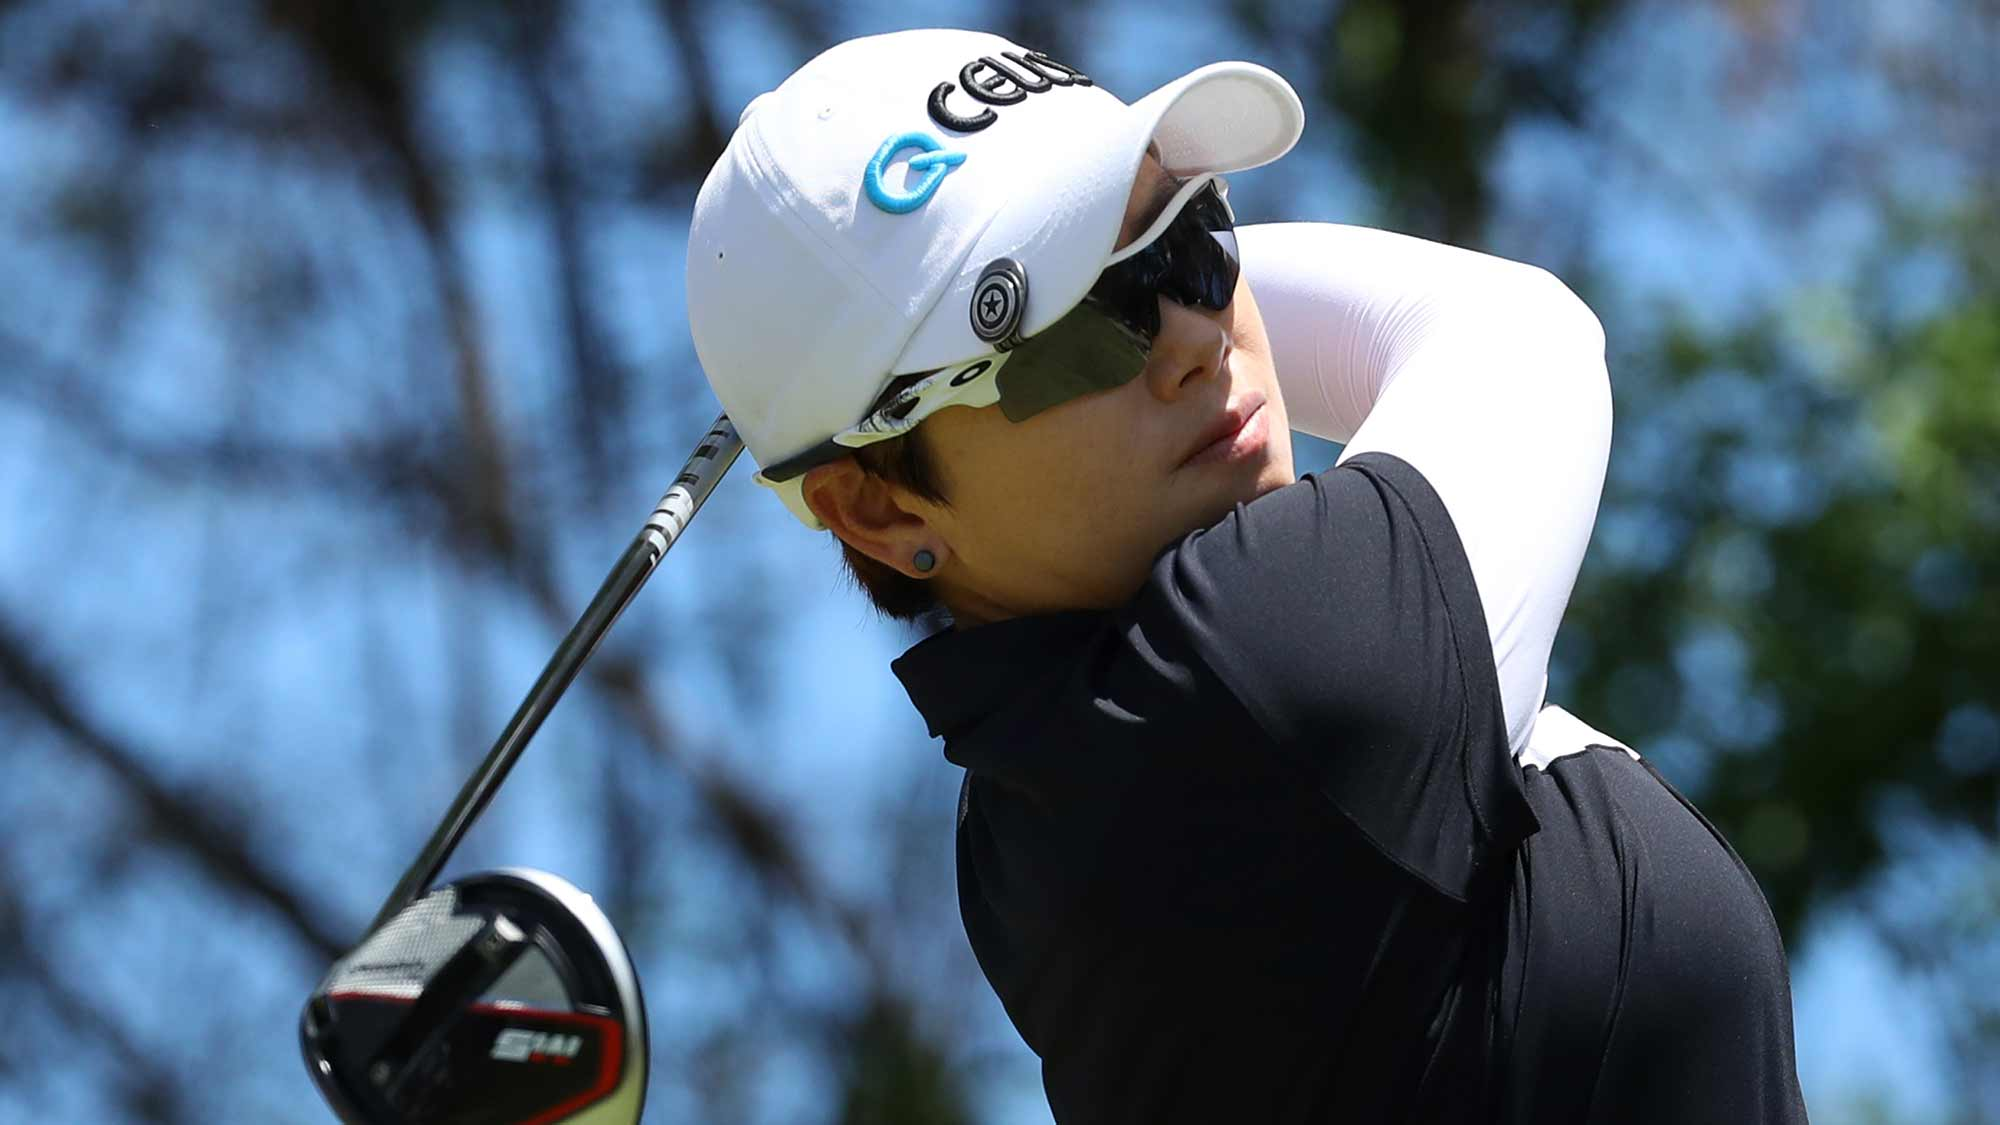 Eun-Hee Ji of South Korea watches her her drive on the fifth hole during the third round of the LOTTE Championship on April 20, 2019 in Kapolei, Hawaii